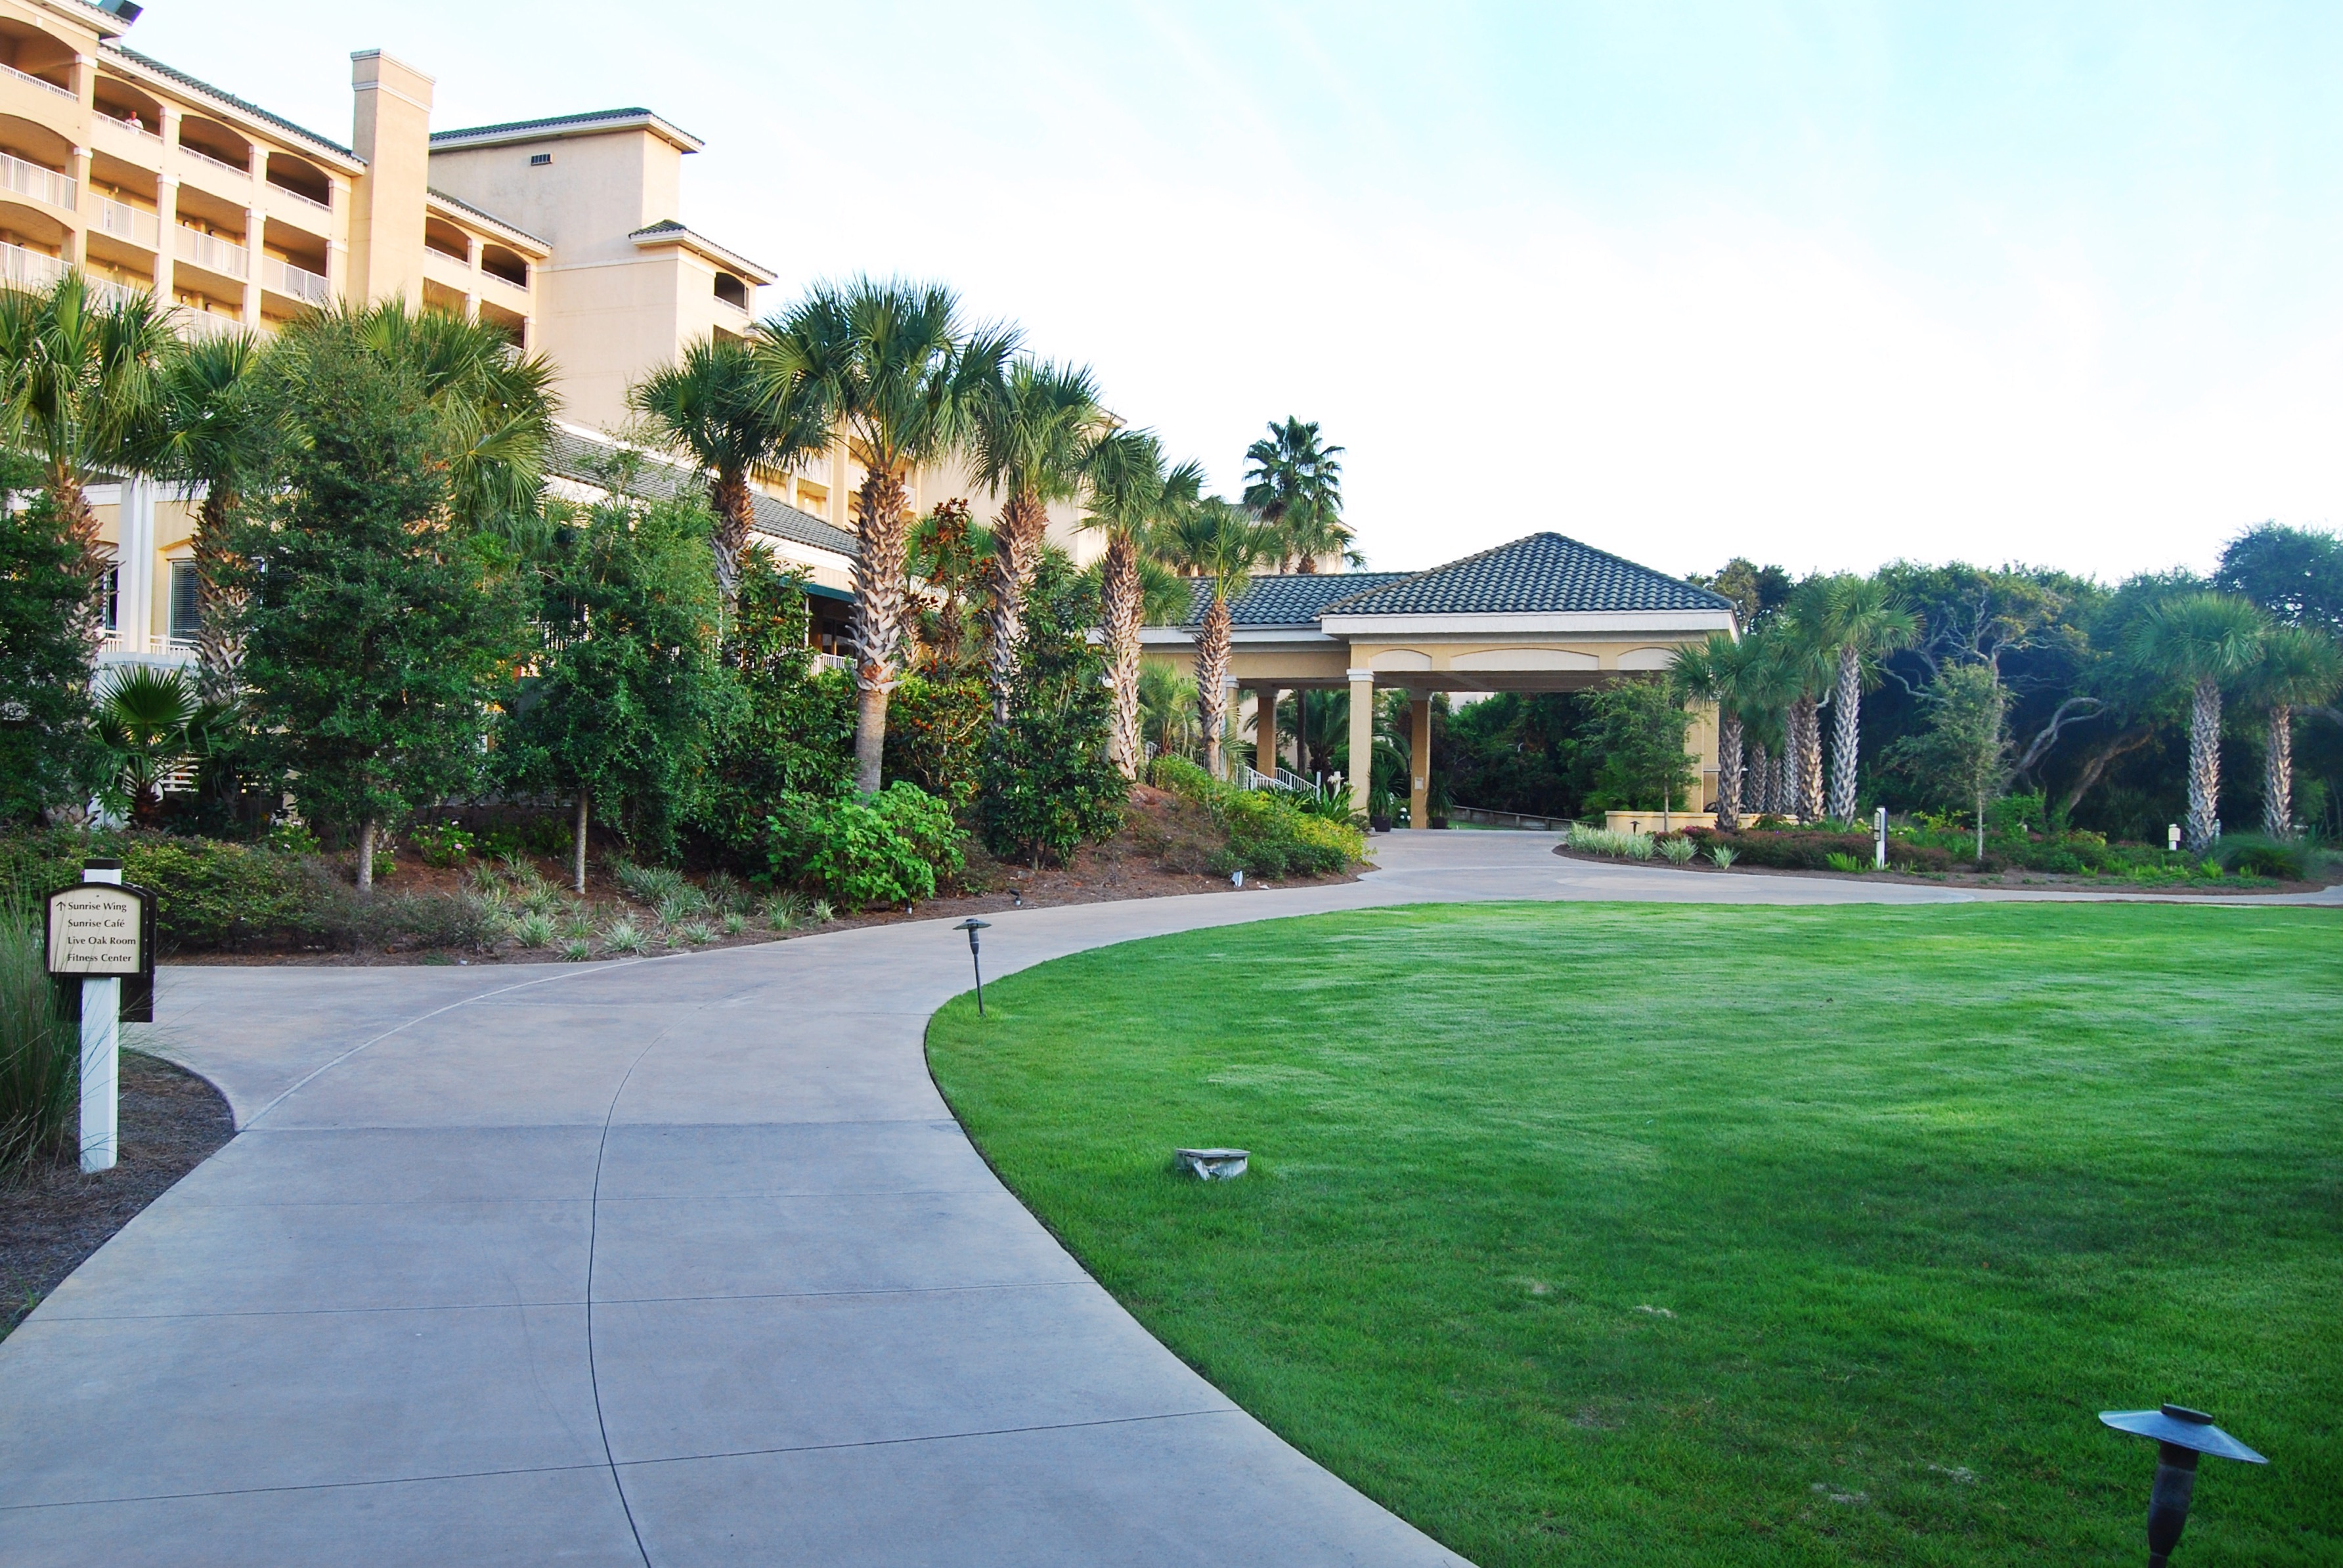 Amelia Island: Omni Amelia Island Plantation Resort | Breezing Through